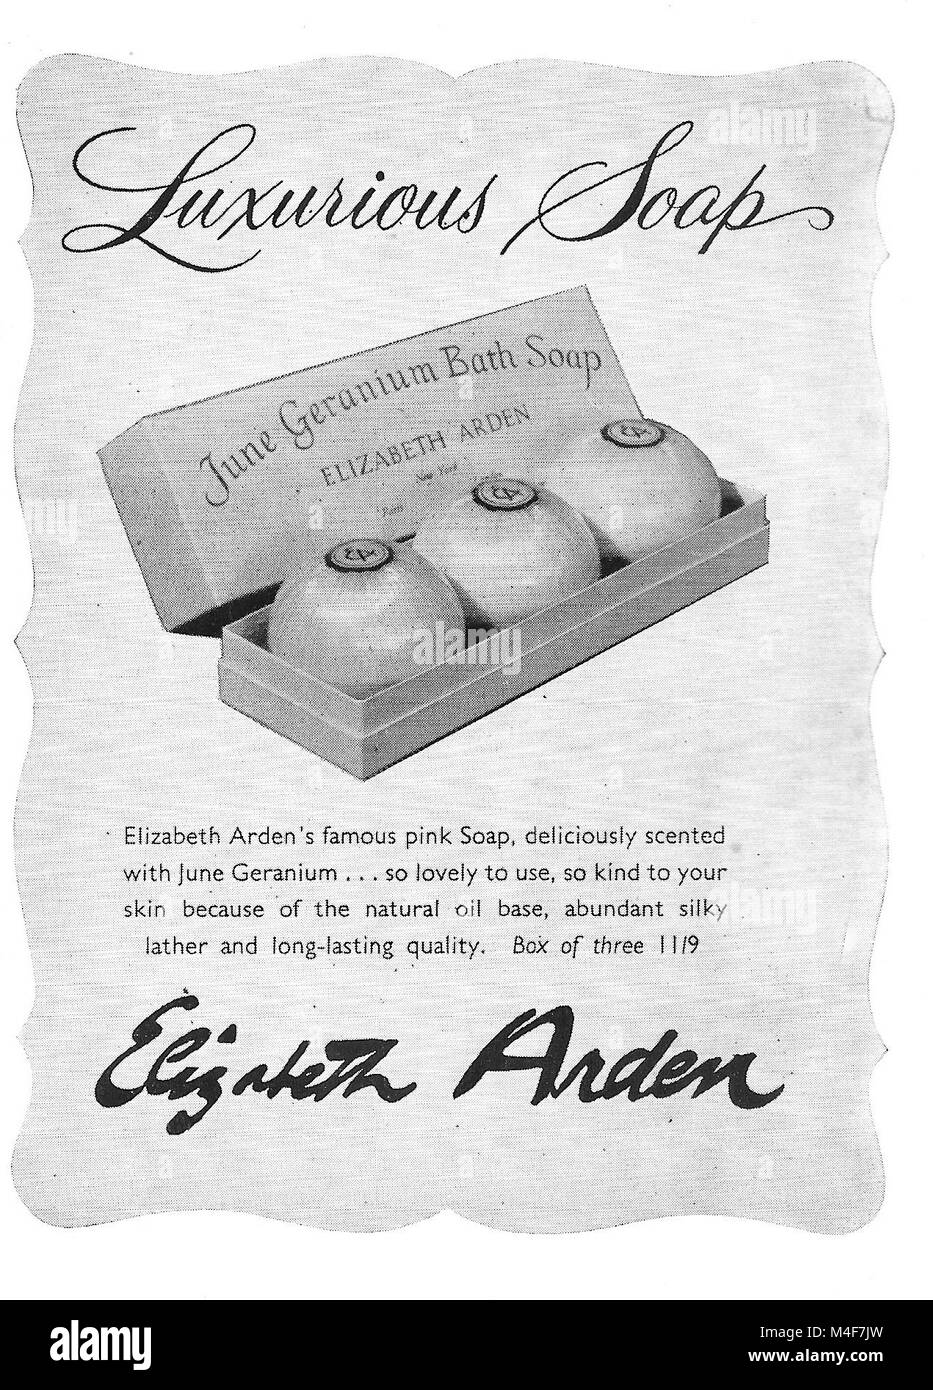 Elizabeth Arden luxurious soap soaps advert, advertising in Country Life magazine UK 1951 - Stock Image